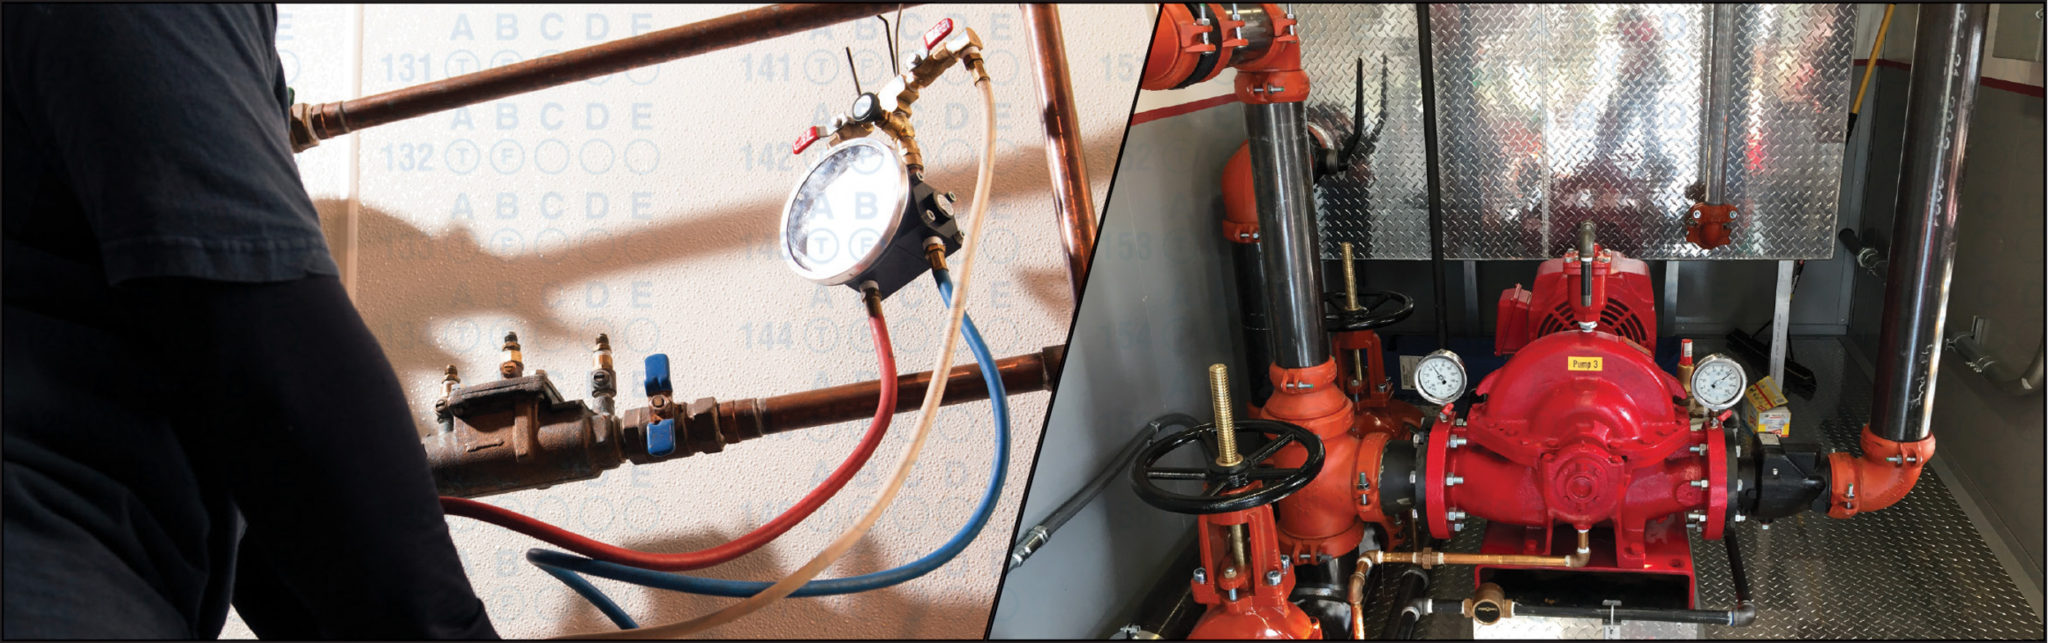 Fire Protection And Backflow Prevention Working Pressure An Electrical Wire With Pipe White Background September 28 2018 According To The Asse International Plumbing